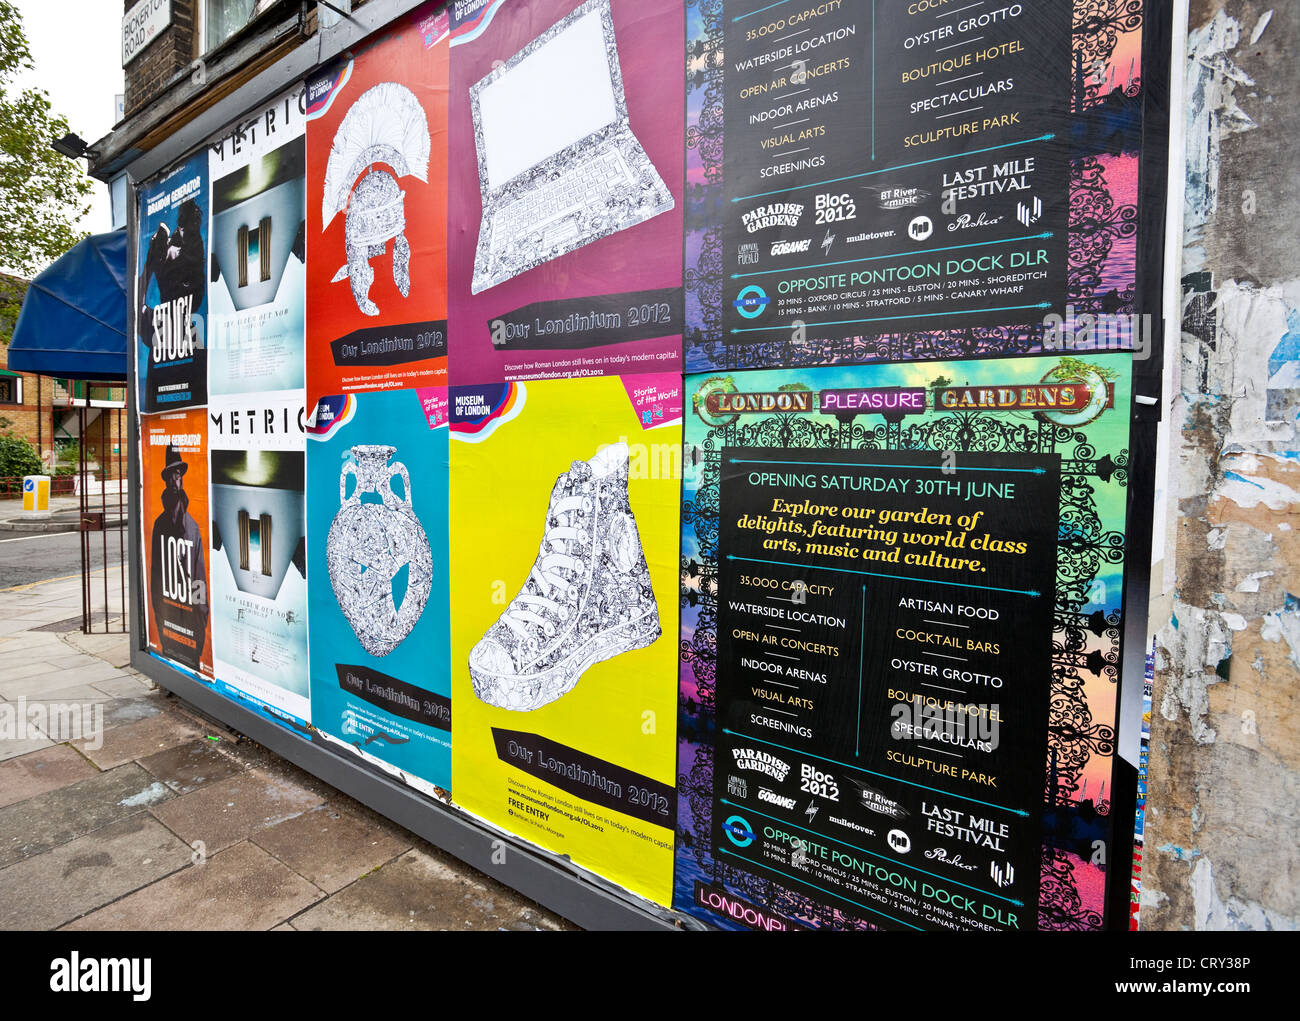 Colourful billboard, London, England, UK - Stock Image